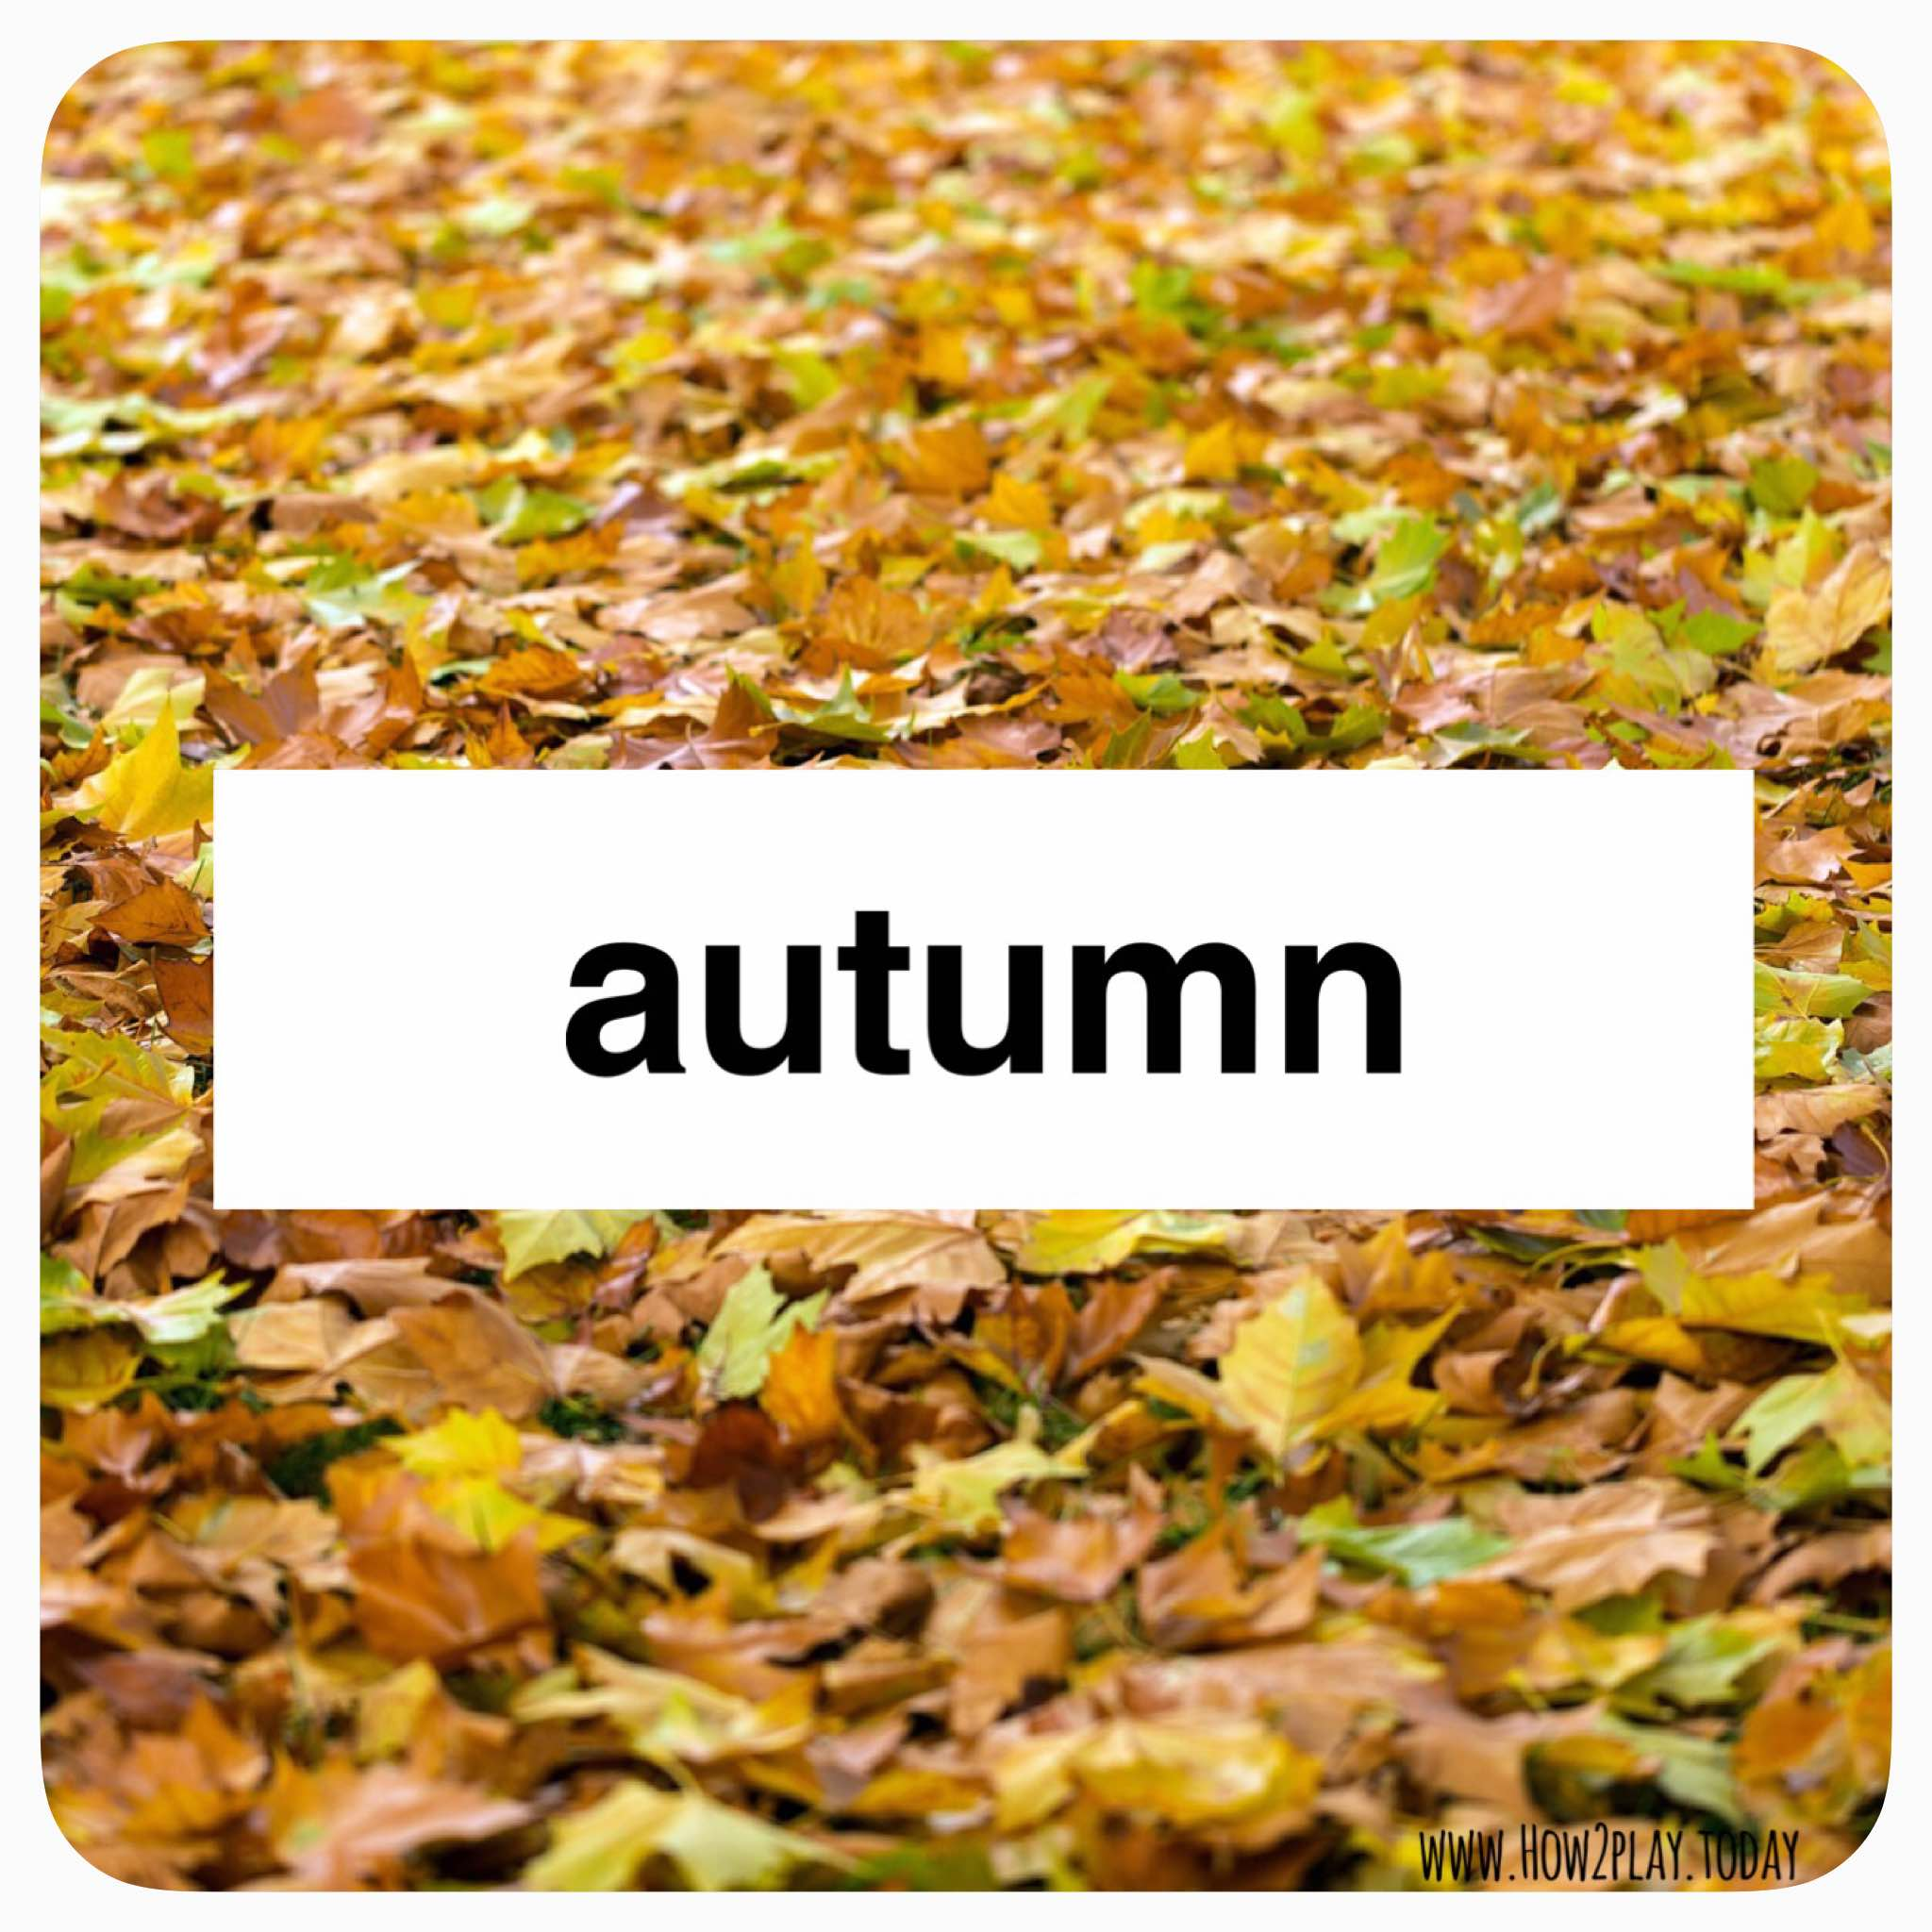 Autumn inspired activities for toddlers, preschoolers, primary students from @how2playtoday